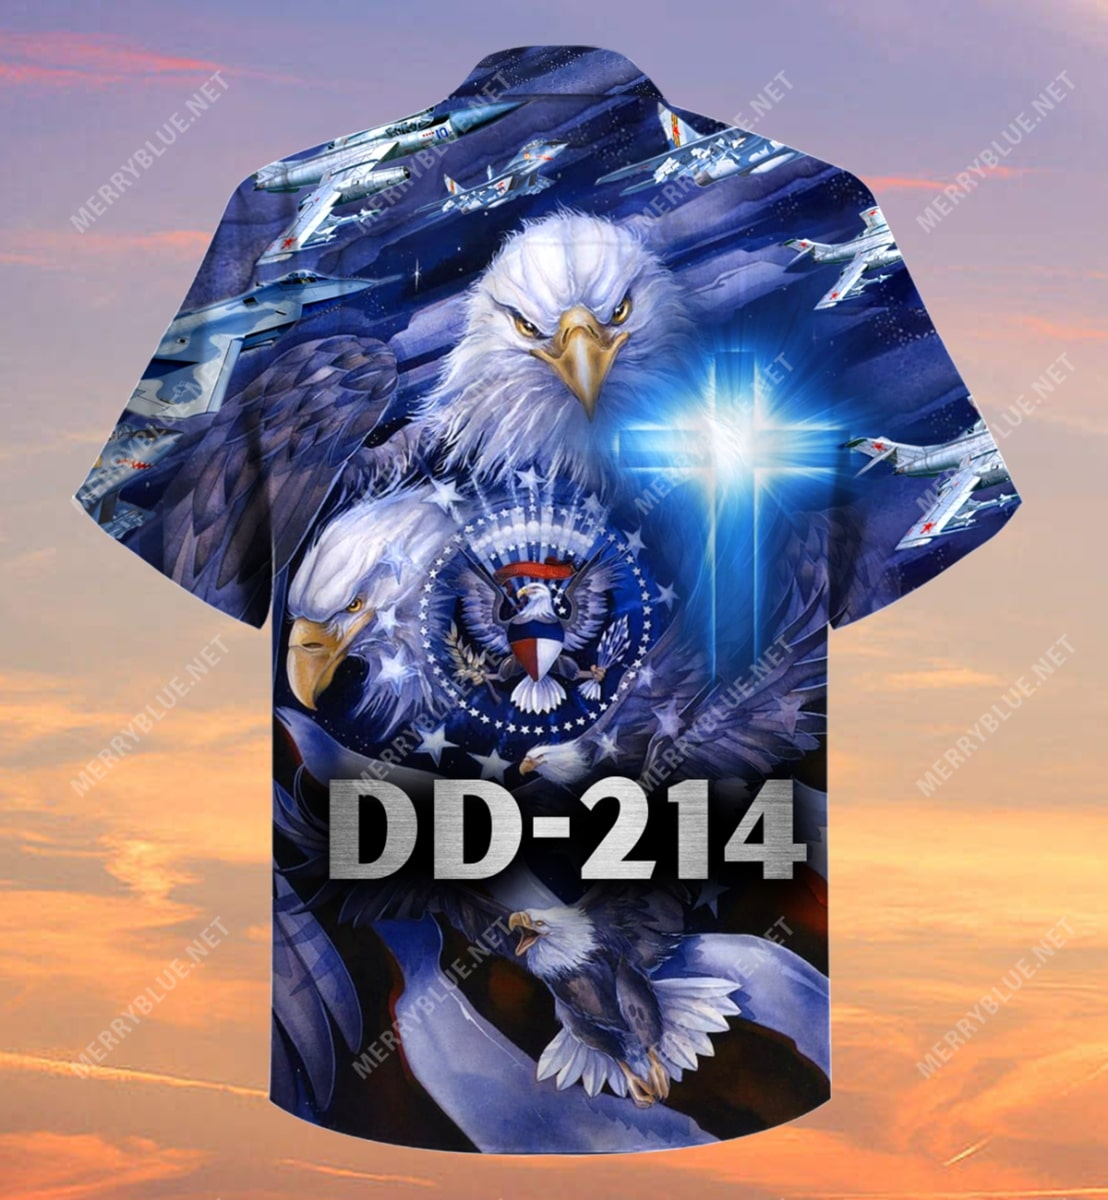 united state veteran on the sky all over printed hawaiian shirt 5